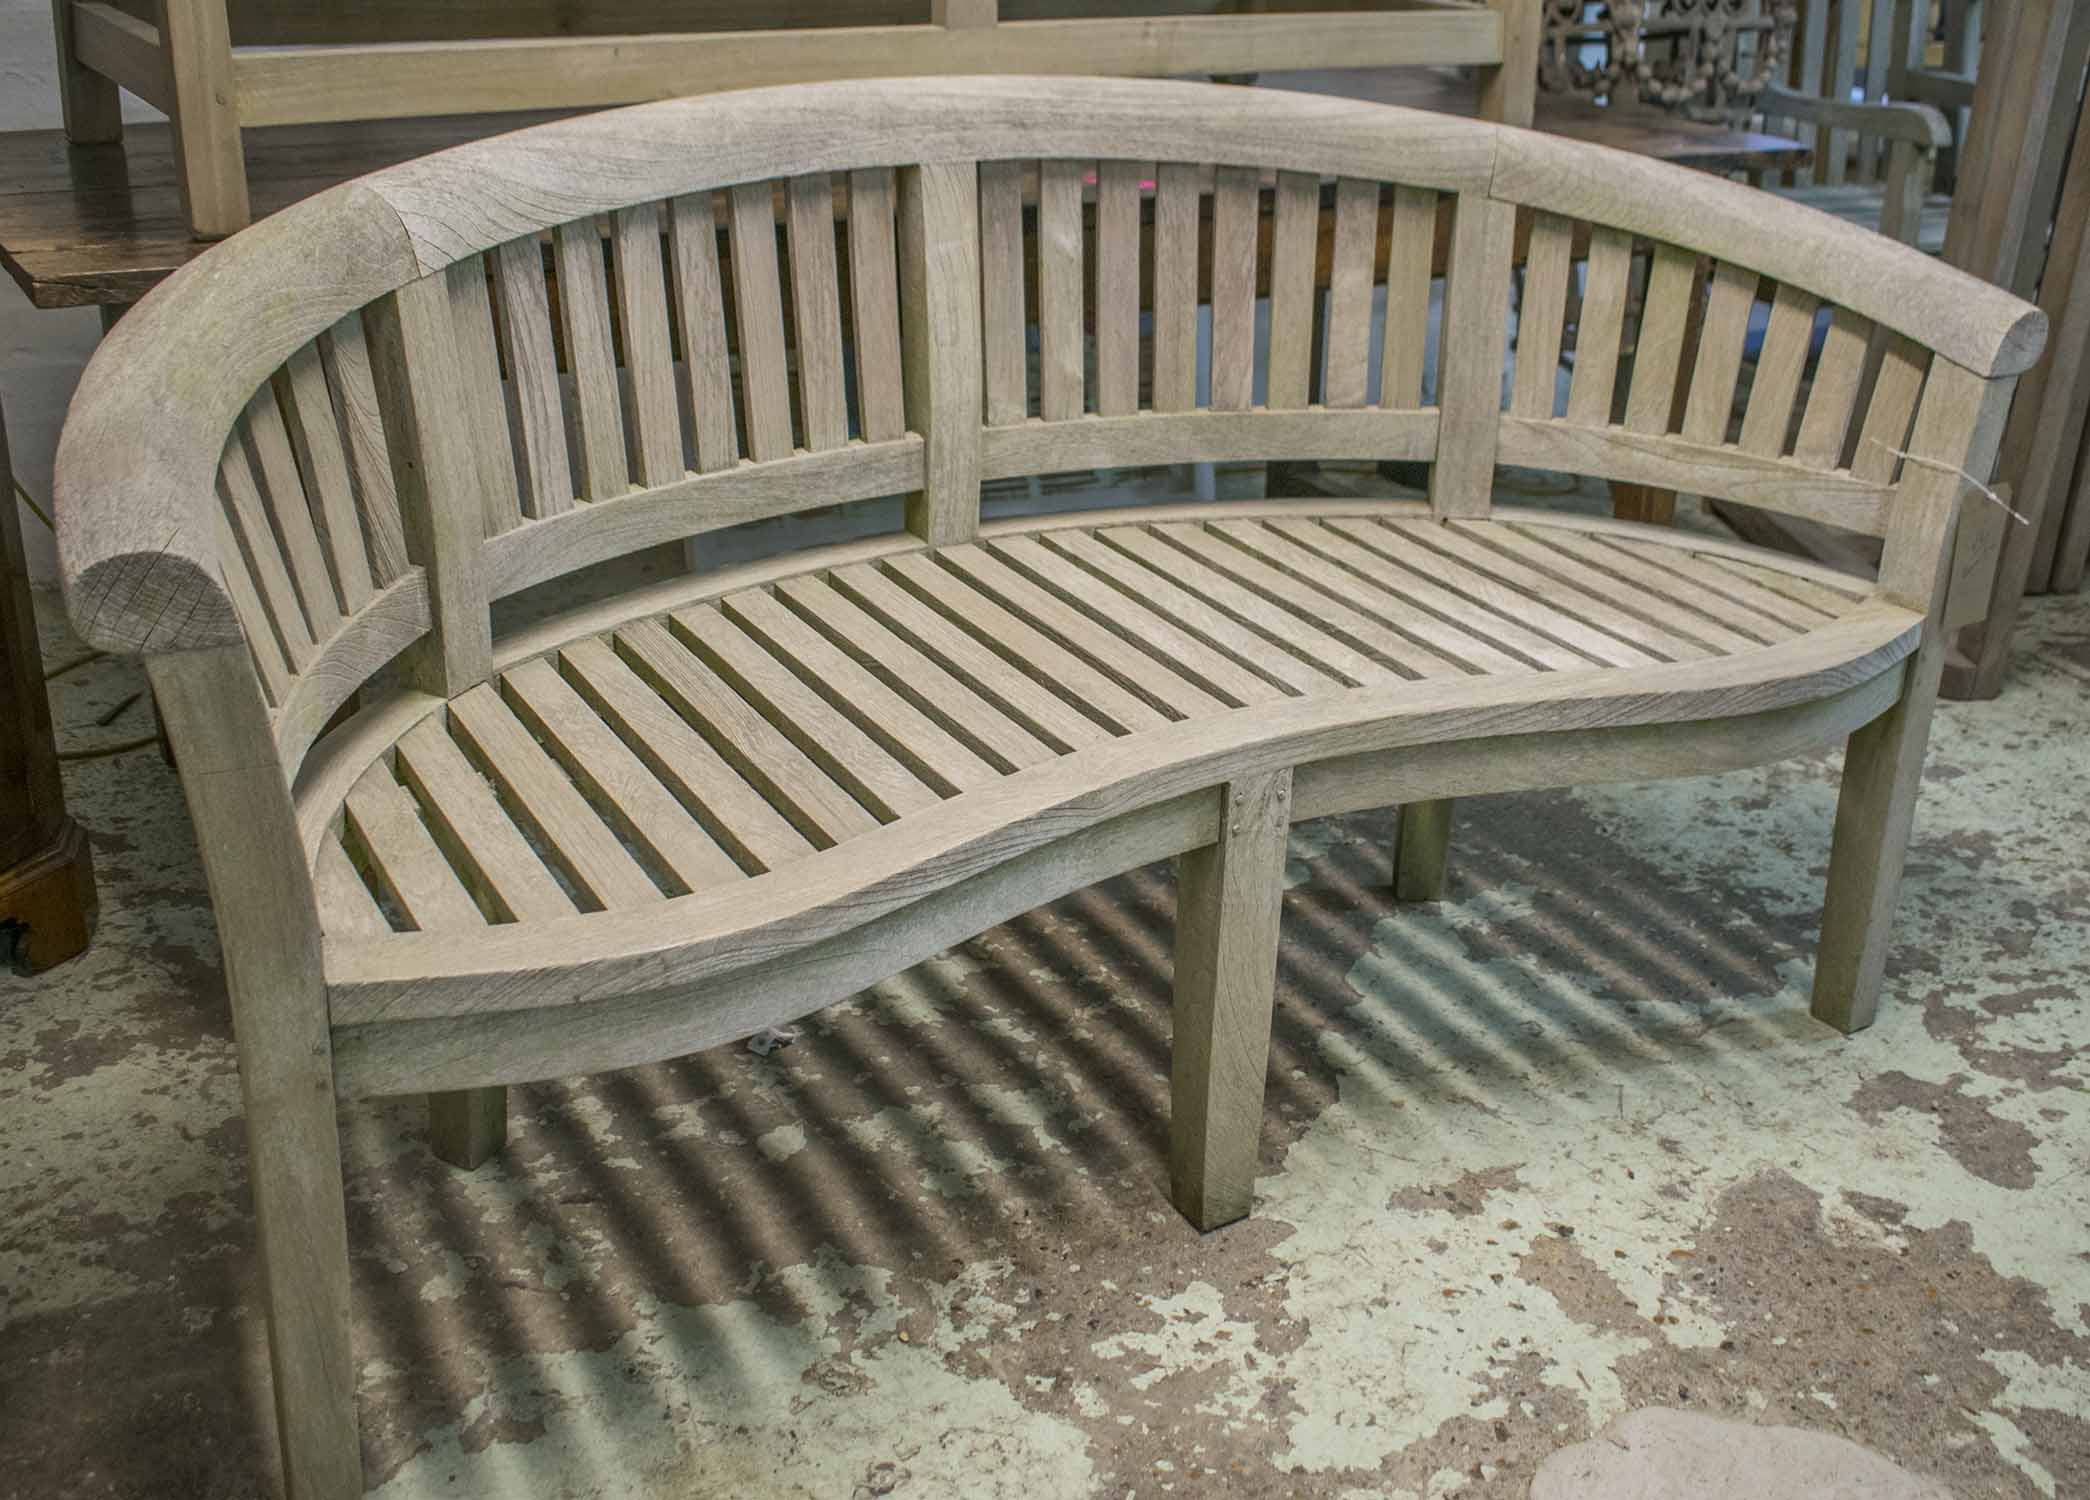 Peachy Banana Garden Bench Weathered Teak Of Slatted Construction Pabps2019 Chair Design Images Pabps2019Com